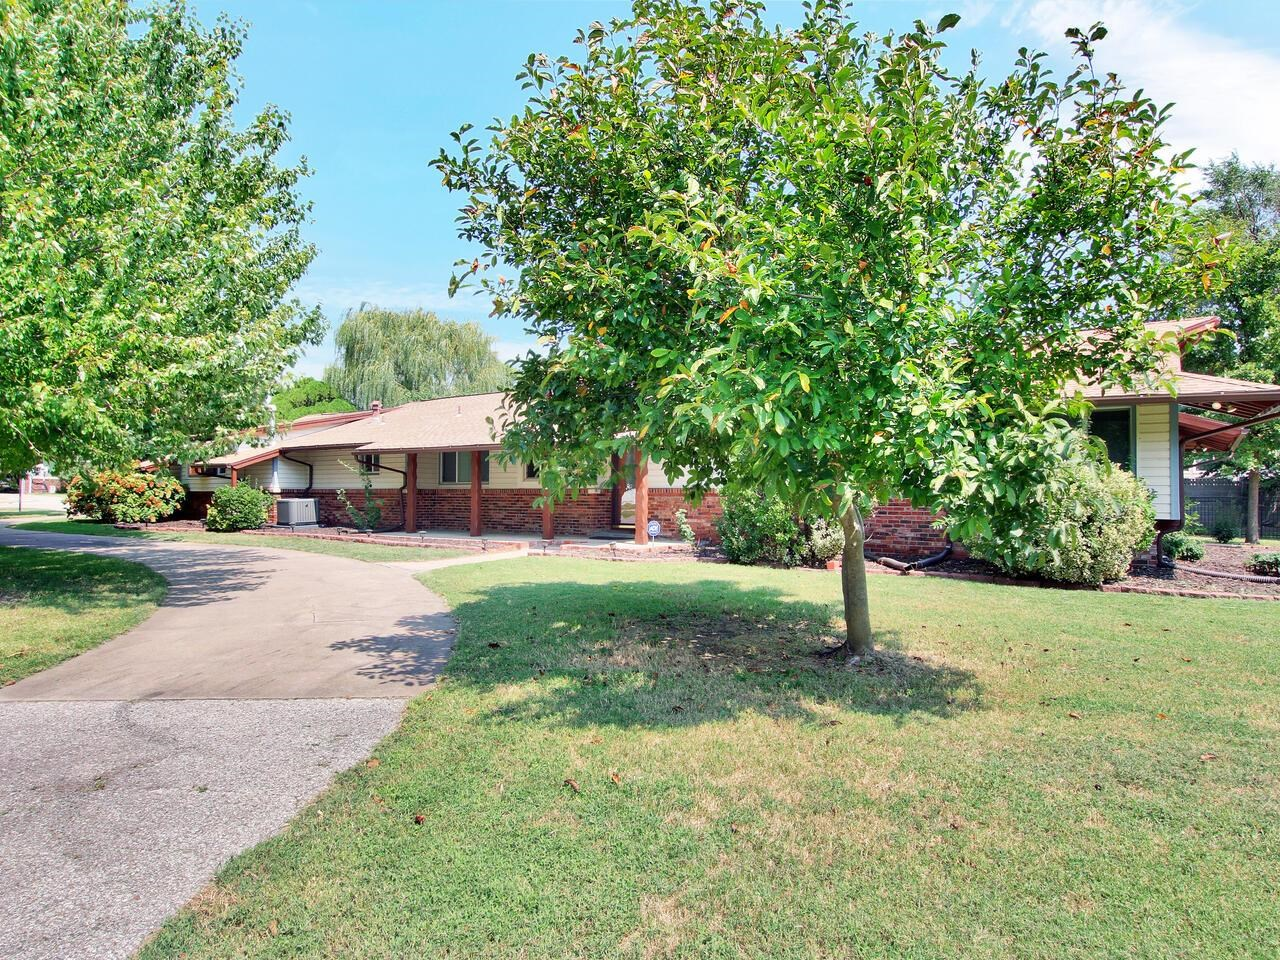 If you're looking for a country setting in a tranquil neighborhood, yet close to one of the main tho